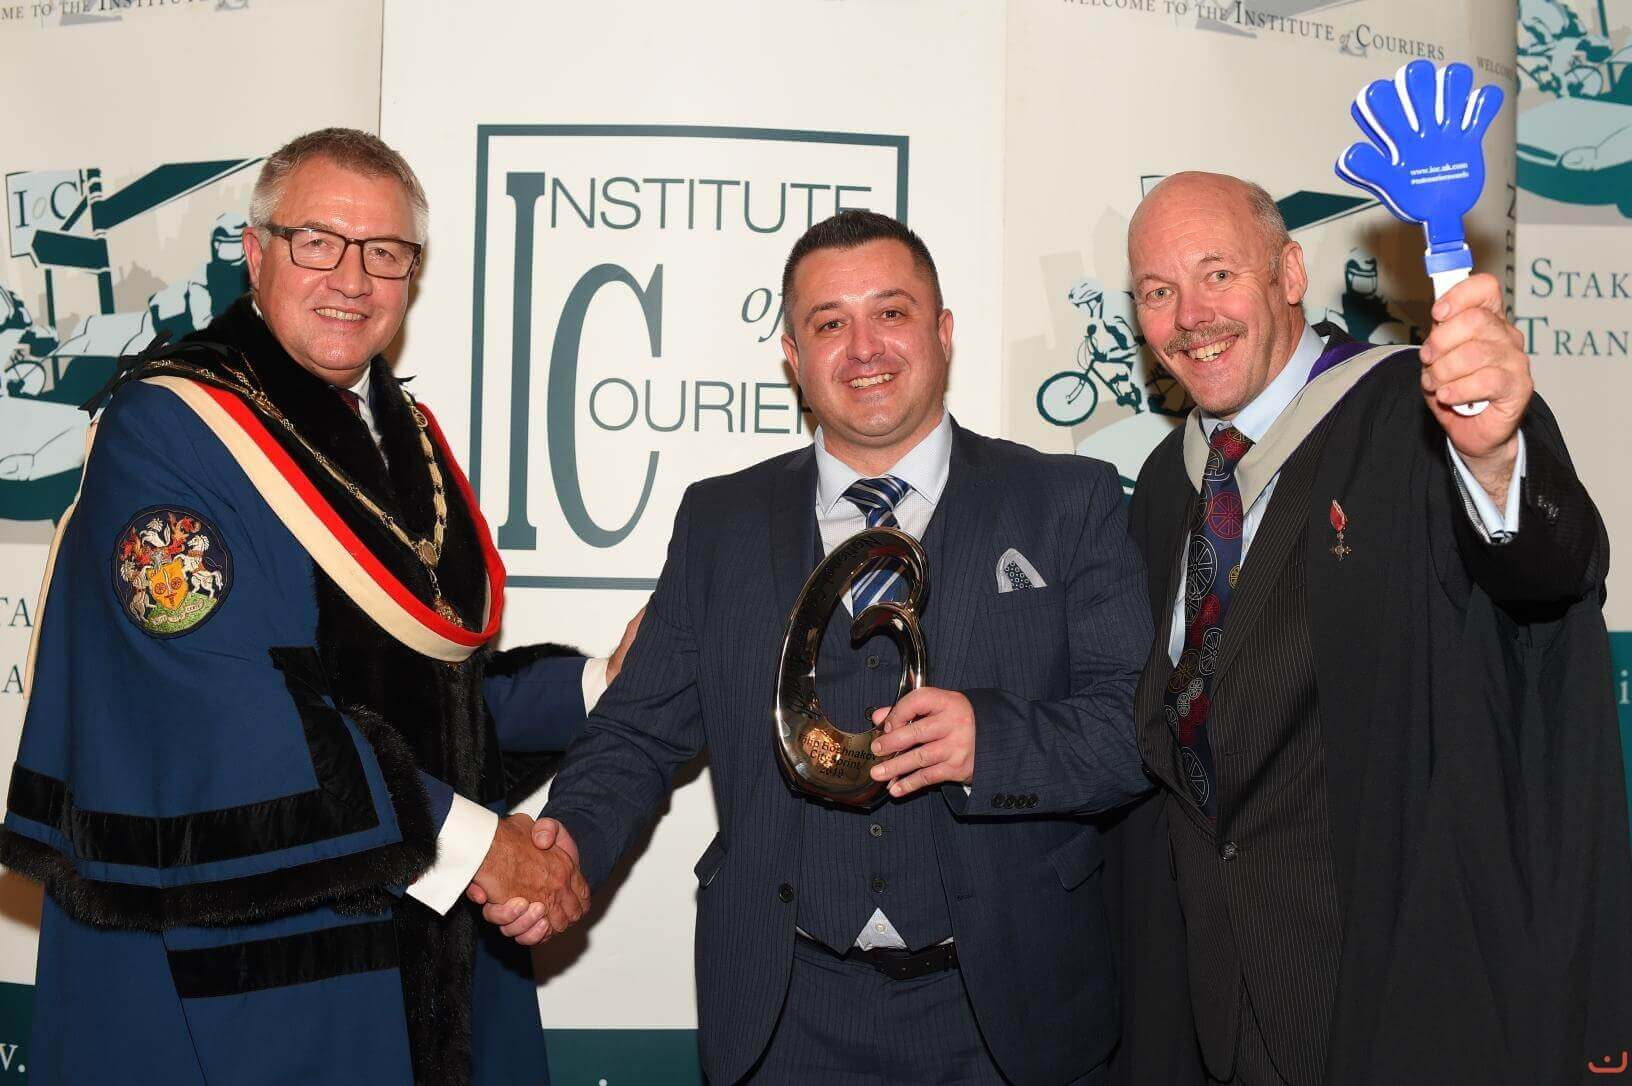 national courier awards 2019